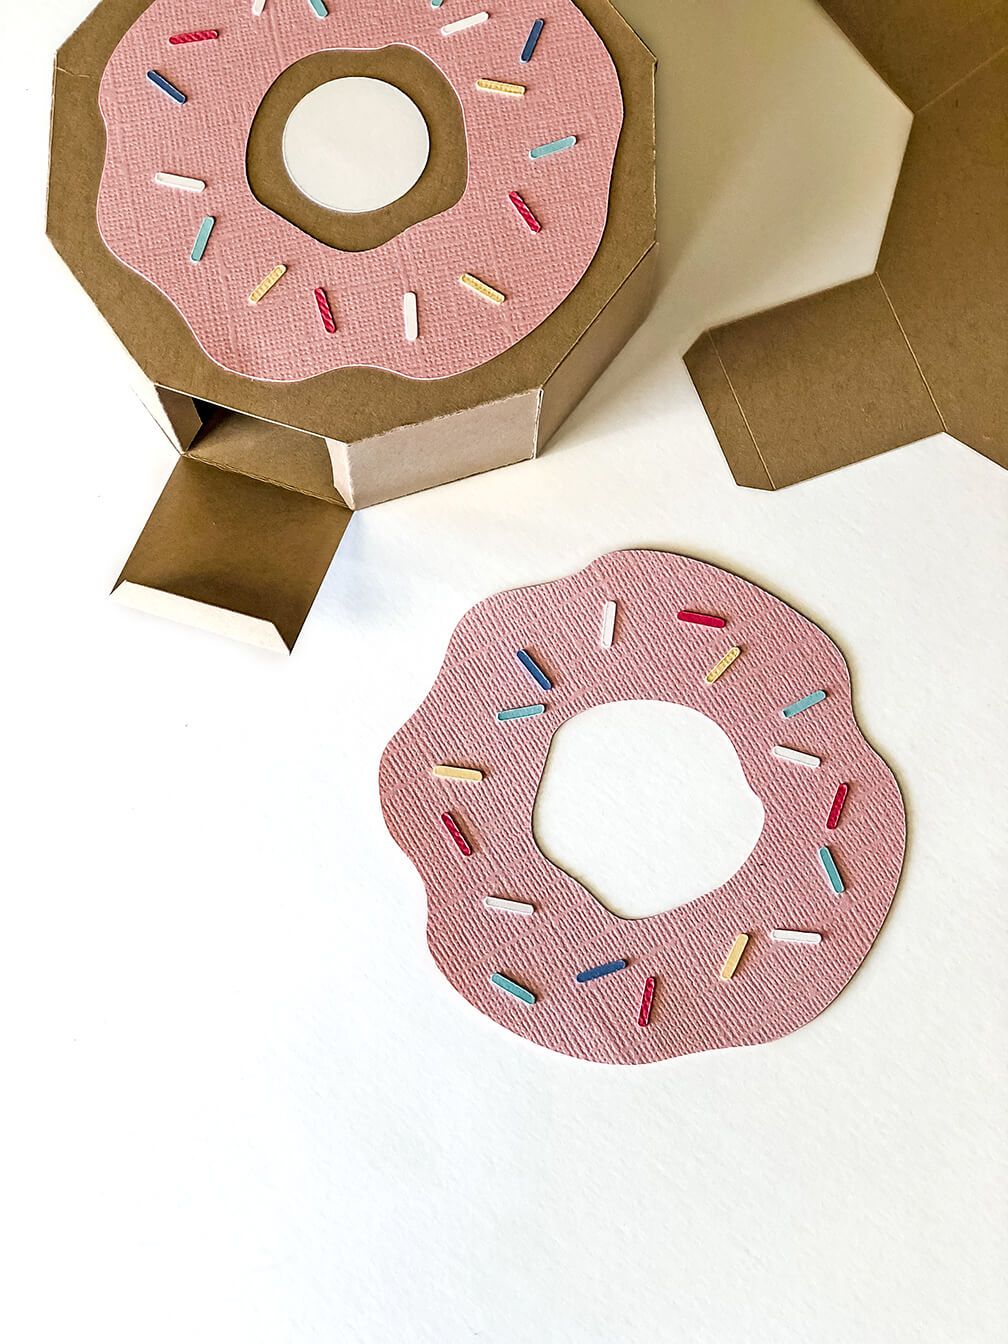 Add sprinkles to the frosting for a Donut party favor box